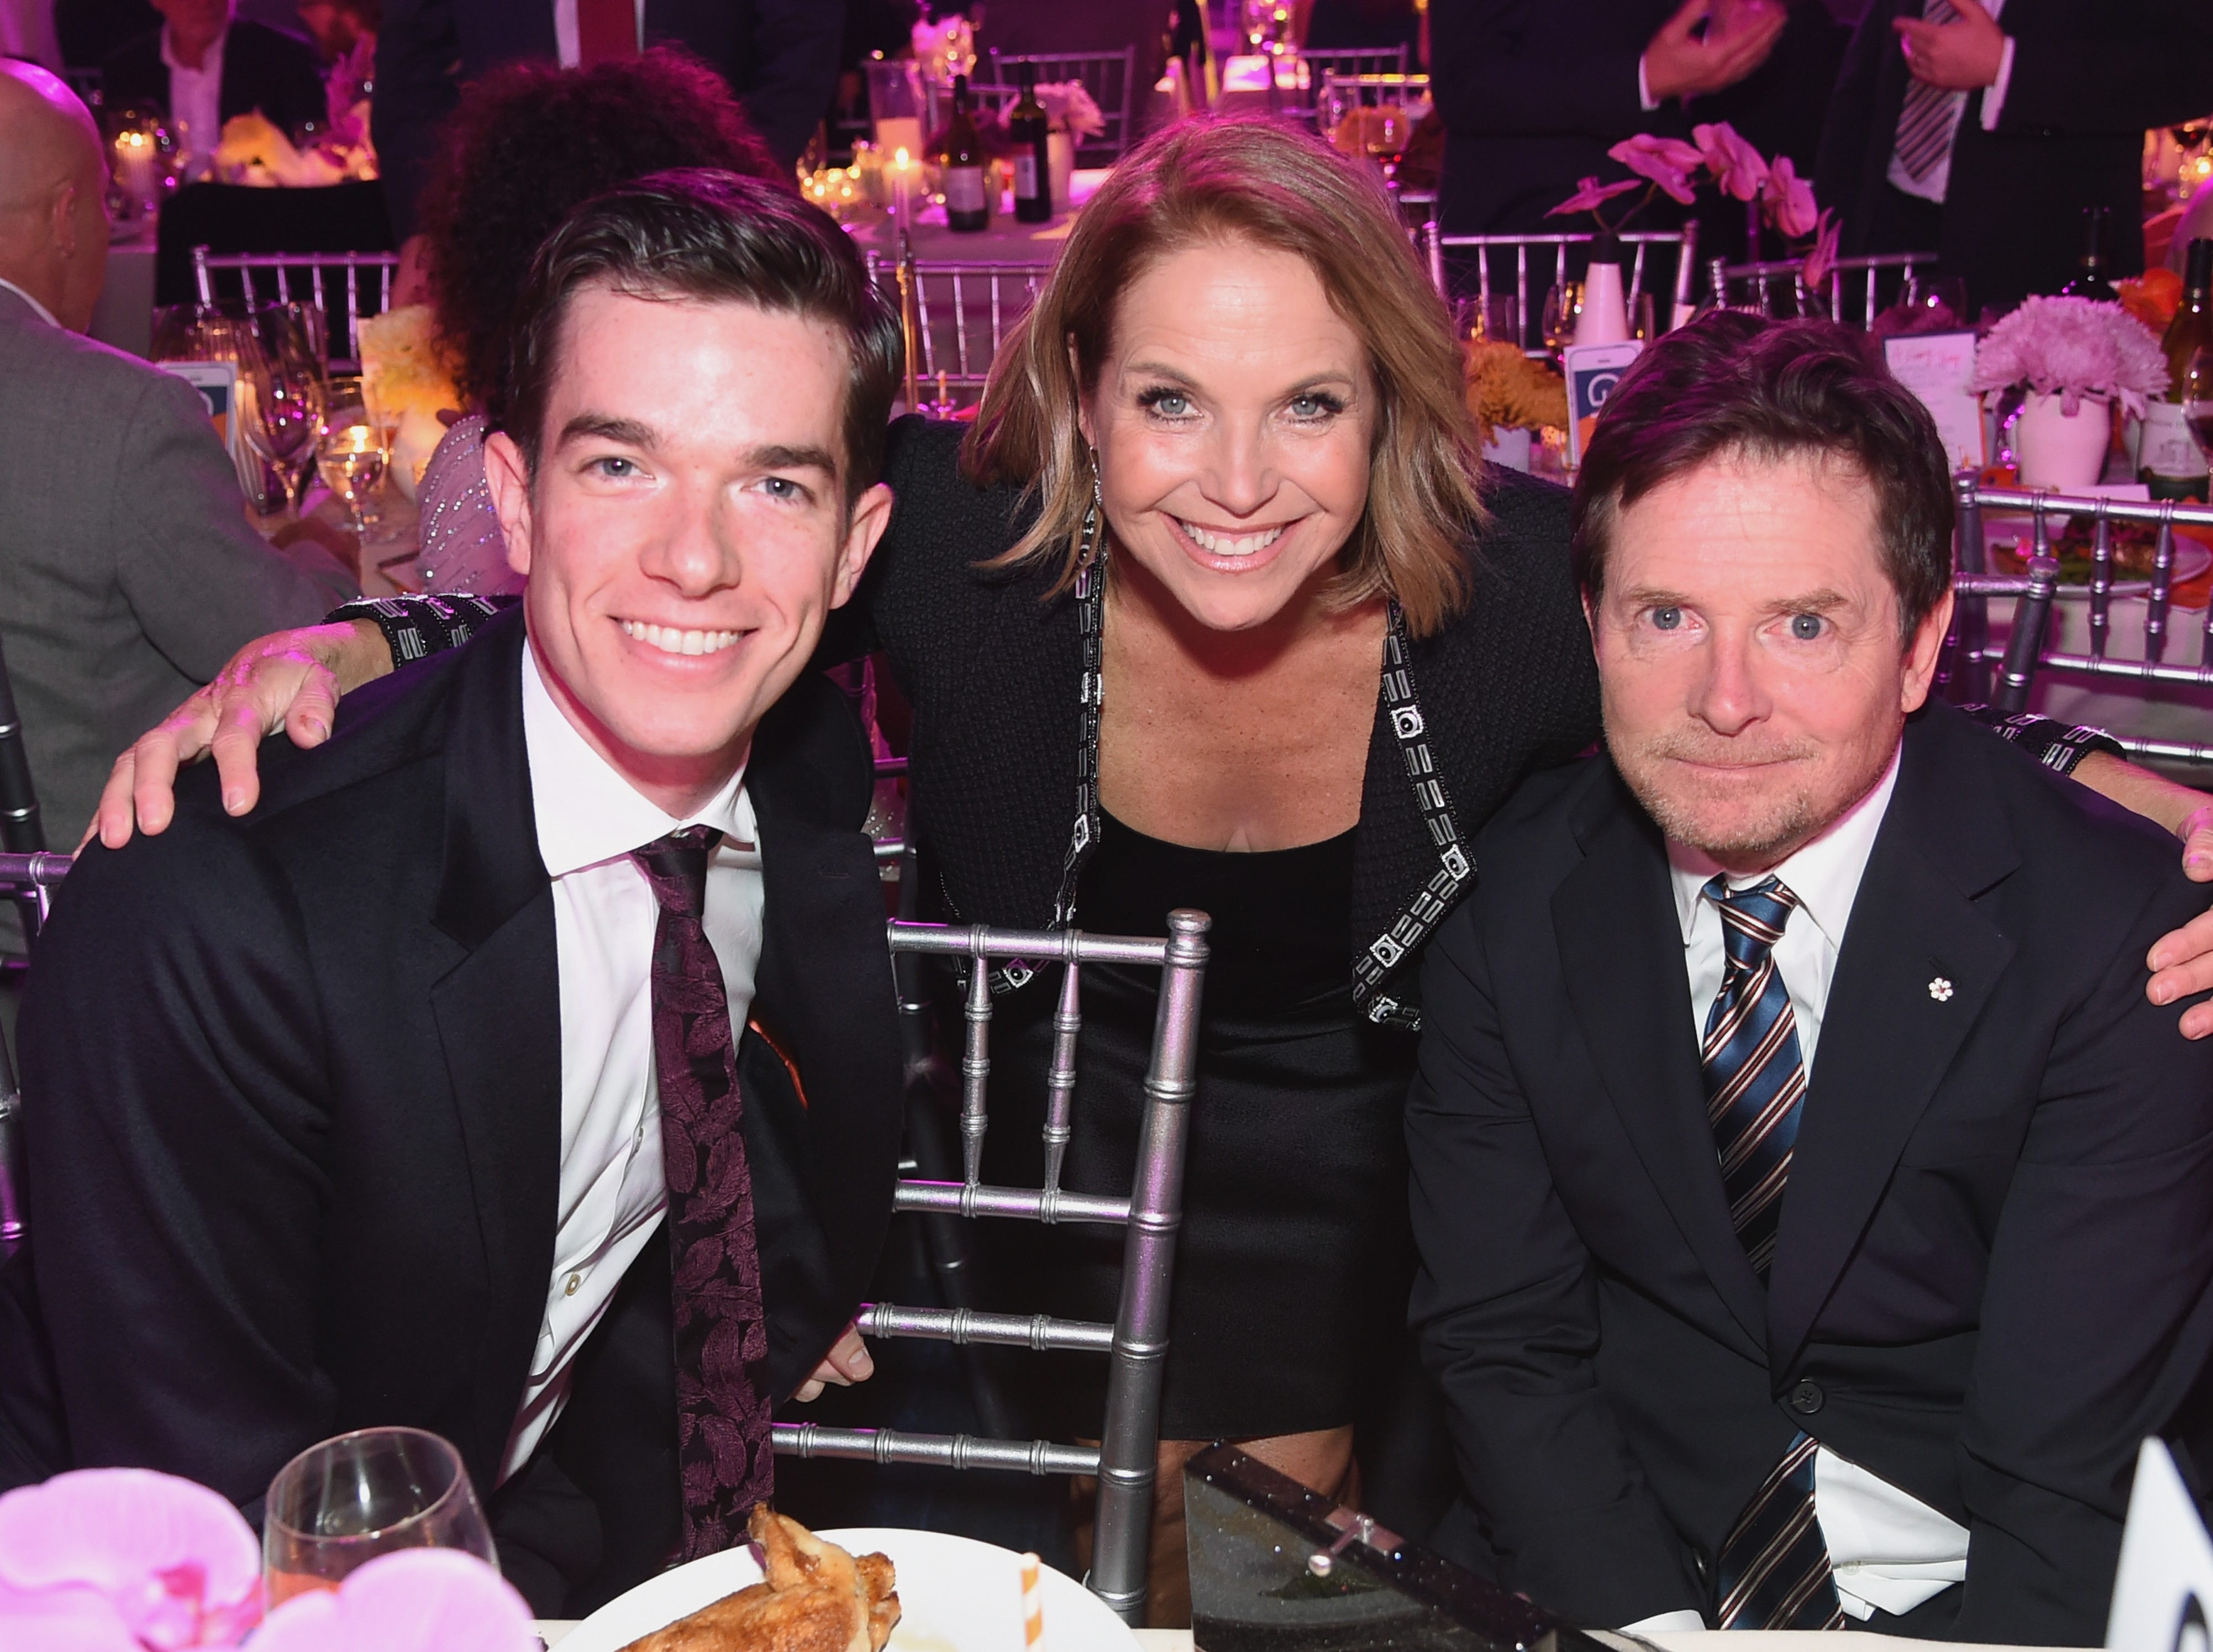 NEW YORK, NY - NOVEMBER 10:  John Mulaney, Katie Couric, and Michael J. Fox attend A Funny Thing Happened On The Way To Cure Parkinson's benefitting The Michael J. Fox Foundation at the Hilton New York on November 10, 2018.  (Photo by Jamie McCarthy/Getty Images) ORG XMIT: 775254797 ORIG FILE ID: 1060104112